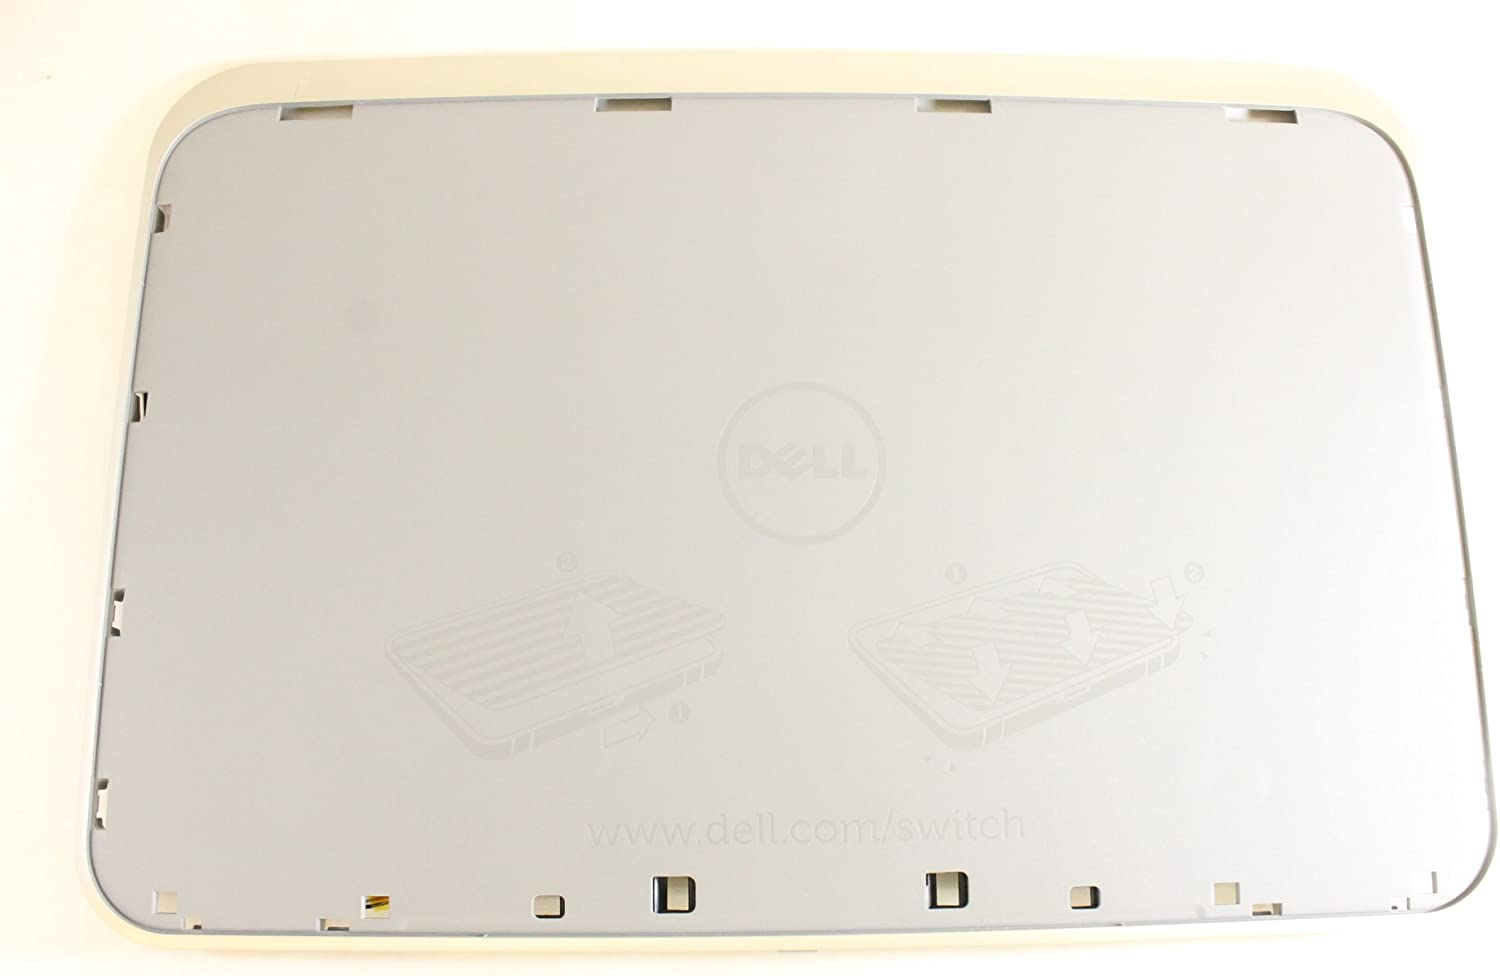 Dell LED 841DG Gray LCD Back Cover Inspiron 5520 7520 Top Lid